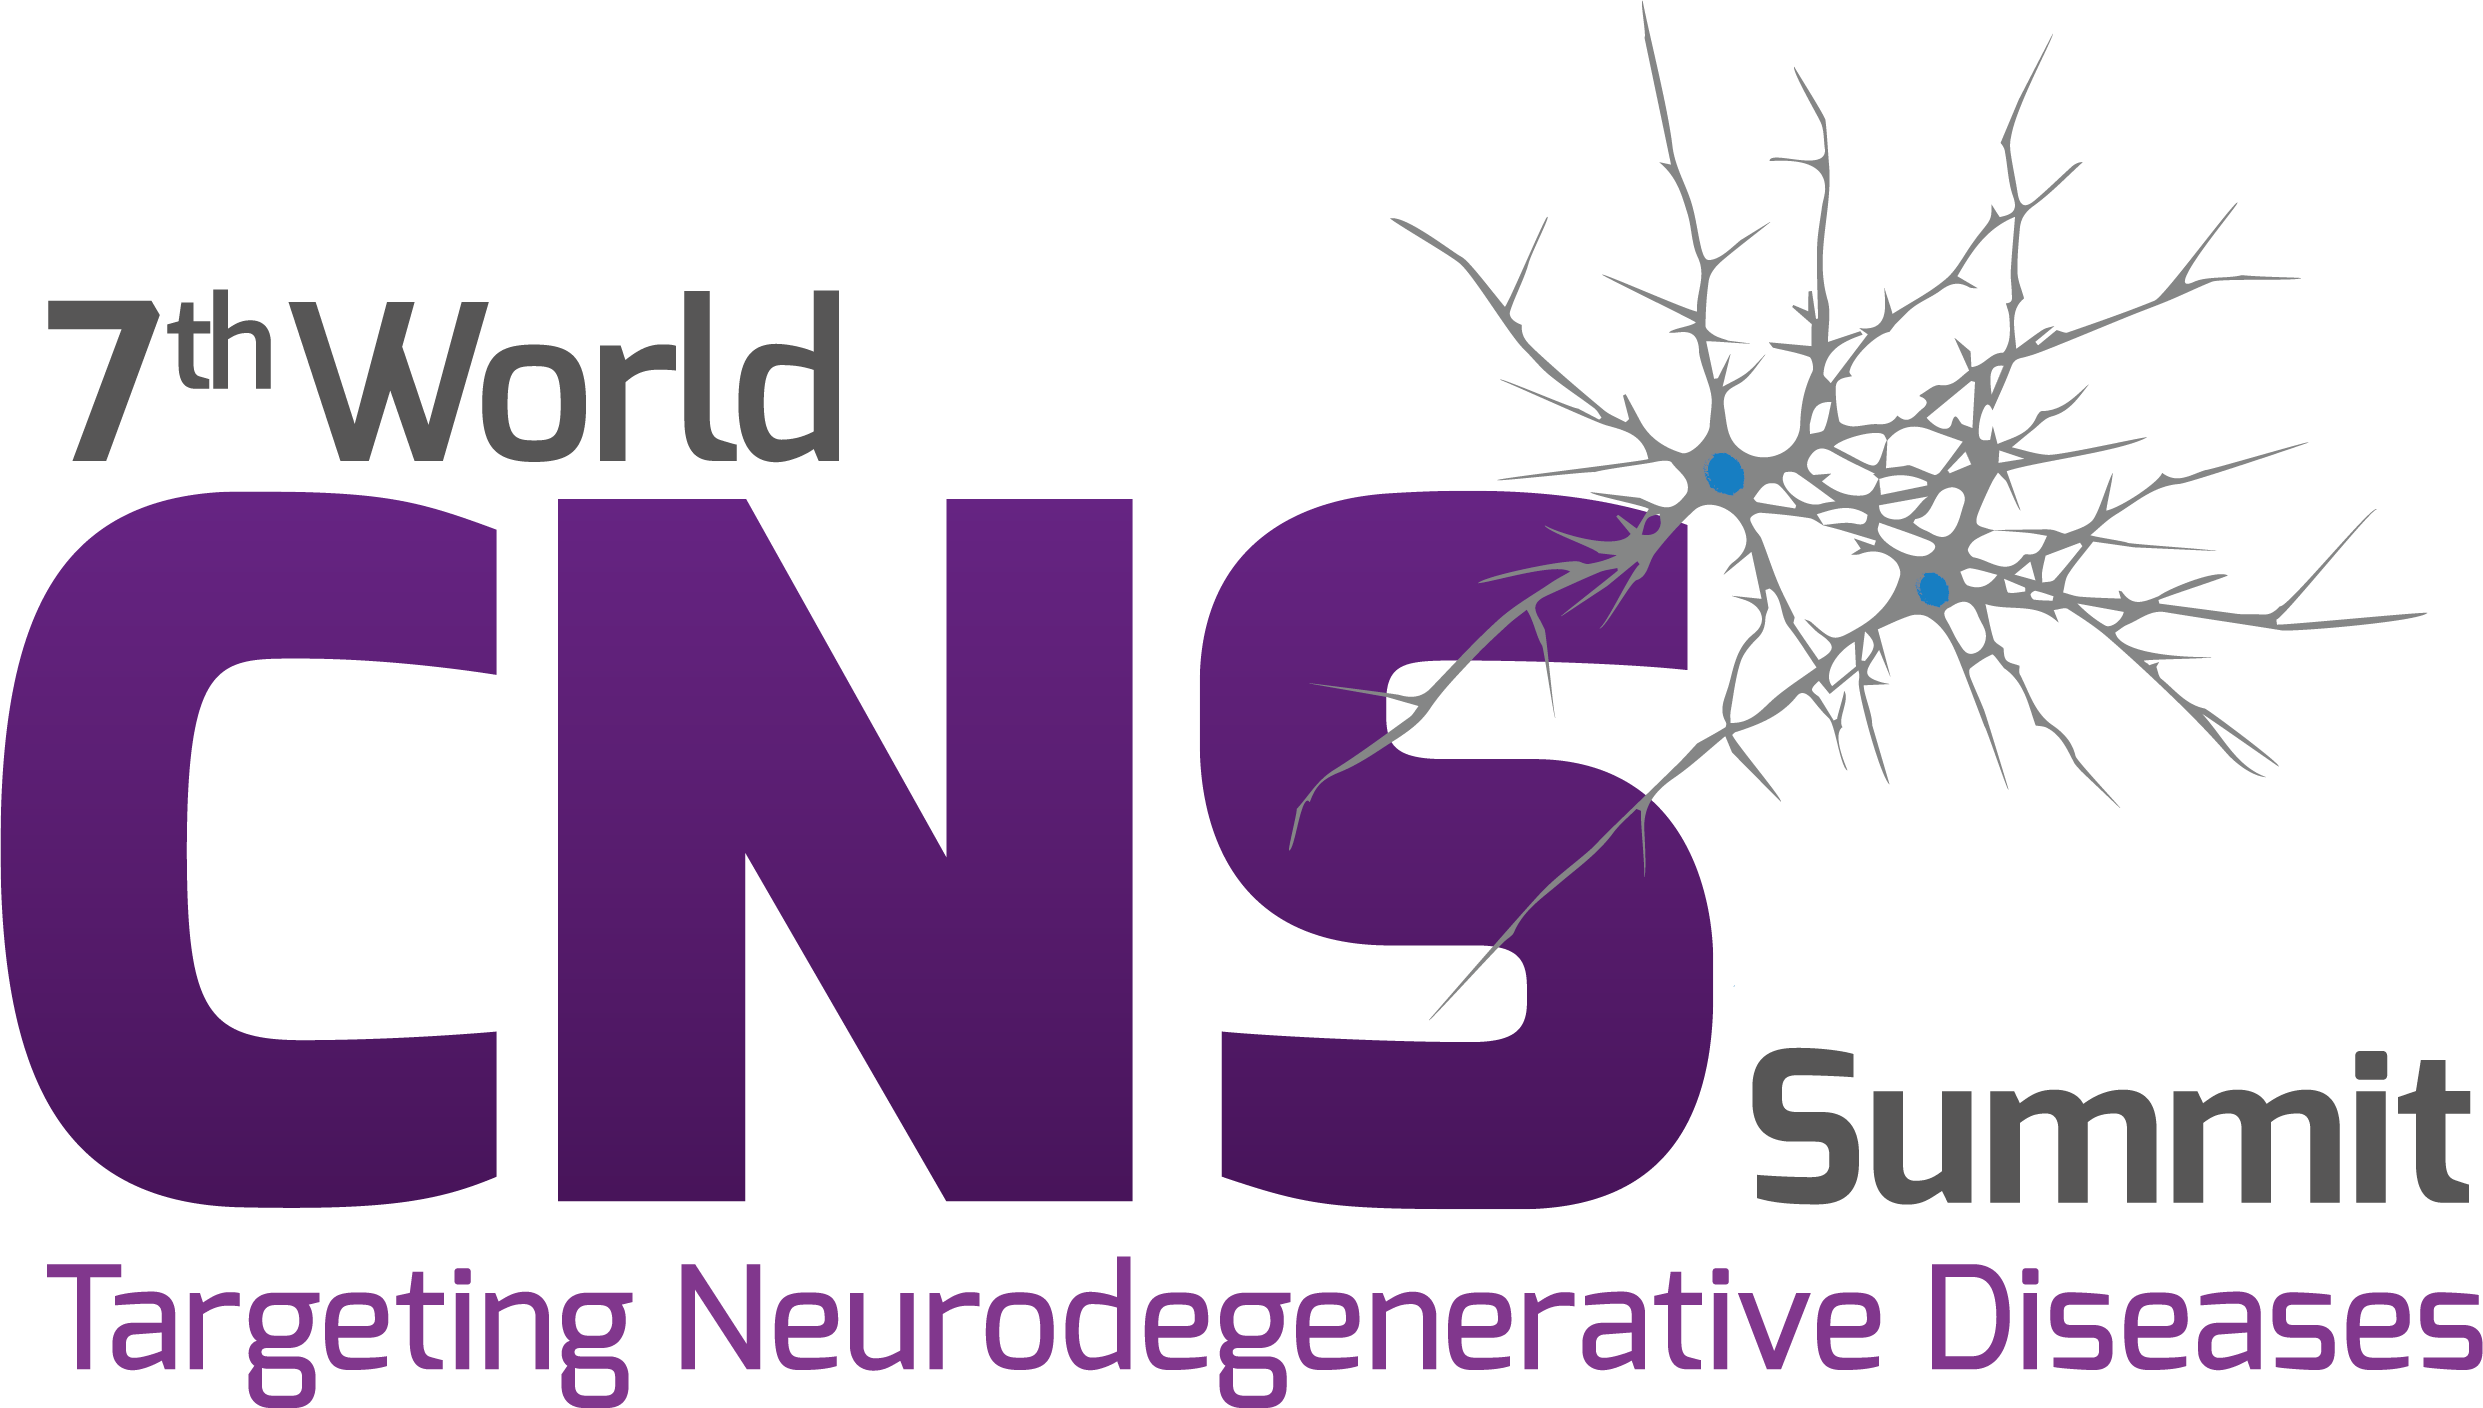 World CNS 2018 logo